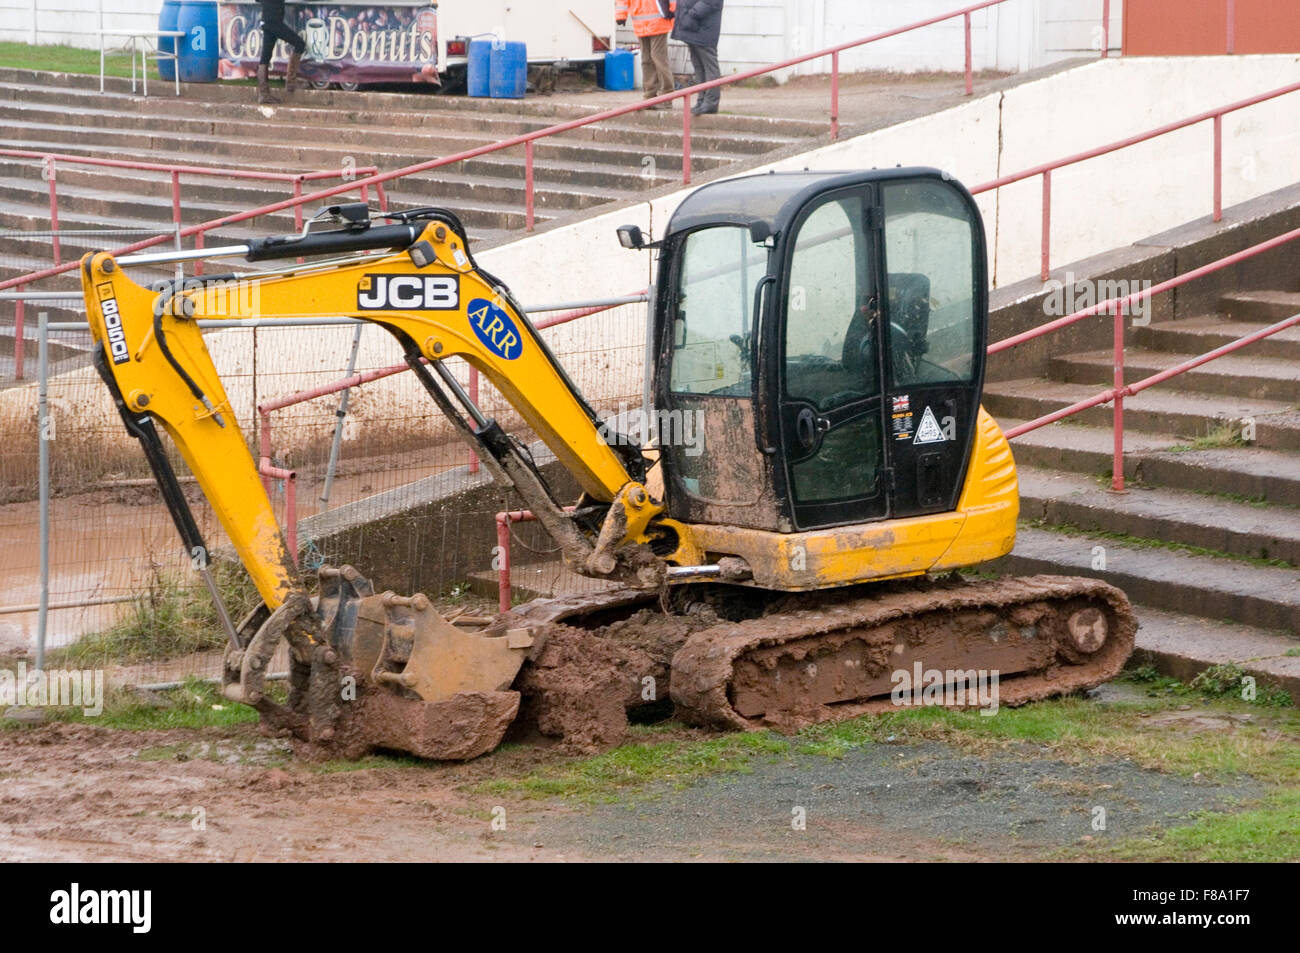 jcb mini digger earthmover movers earth diggers shovel hydraulic arm arms caterpillar track tracks tracked - Stock Image